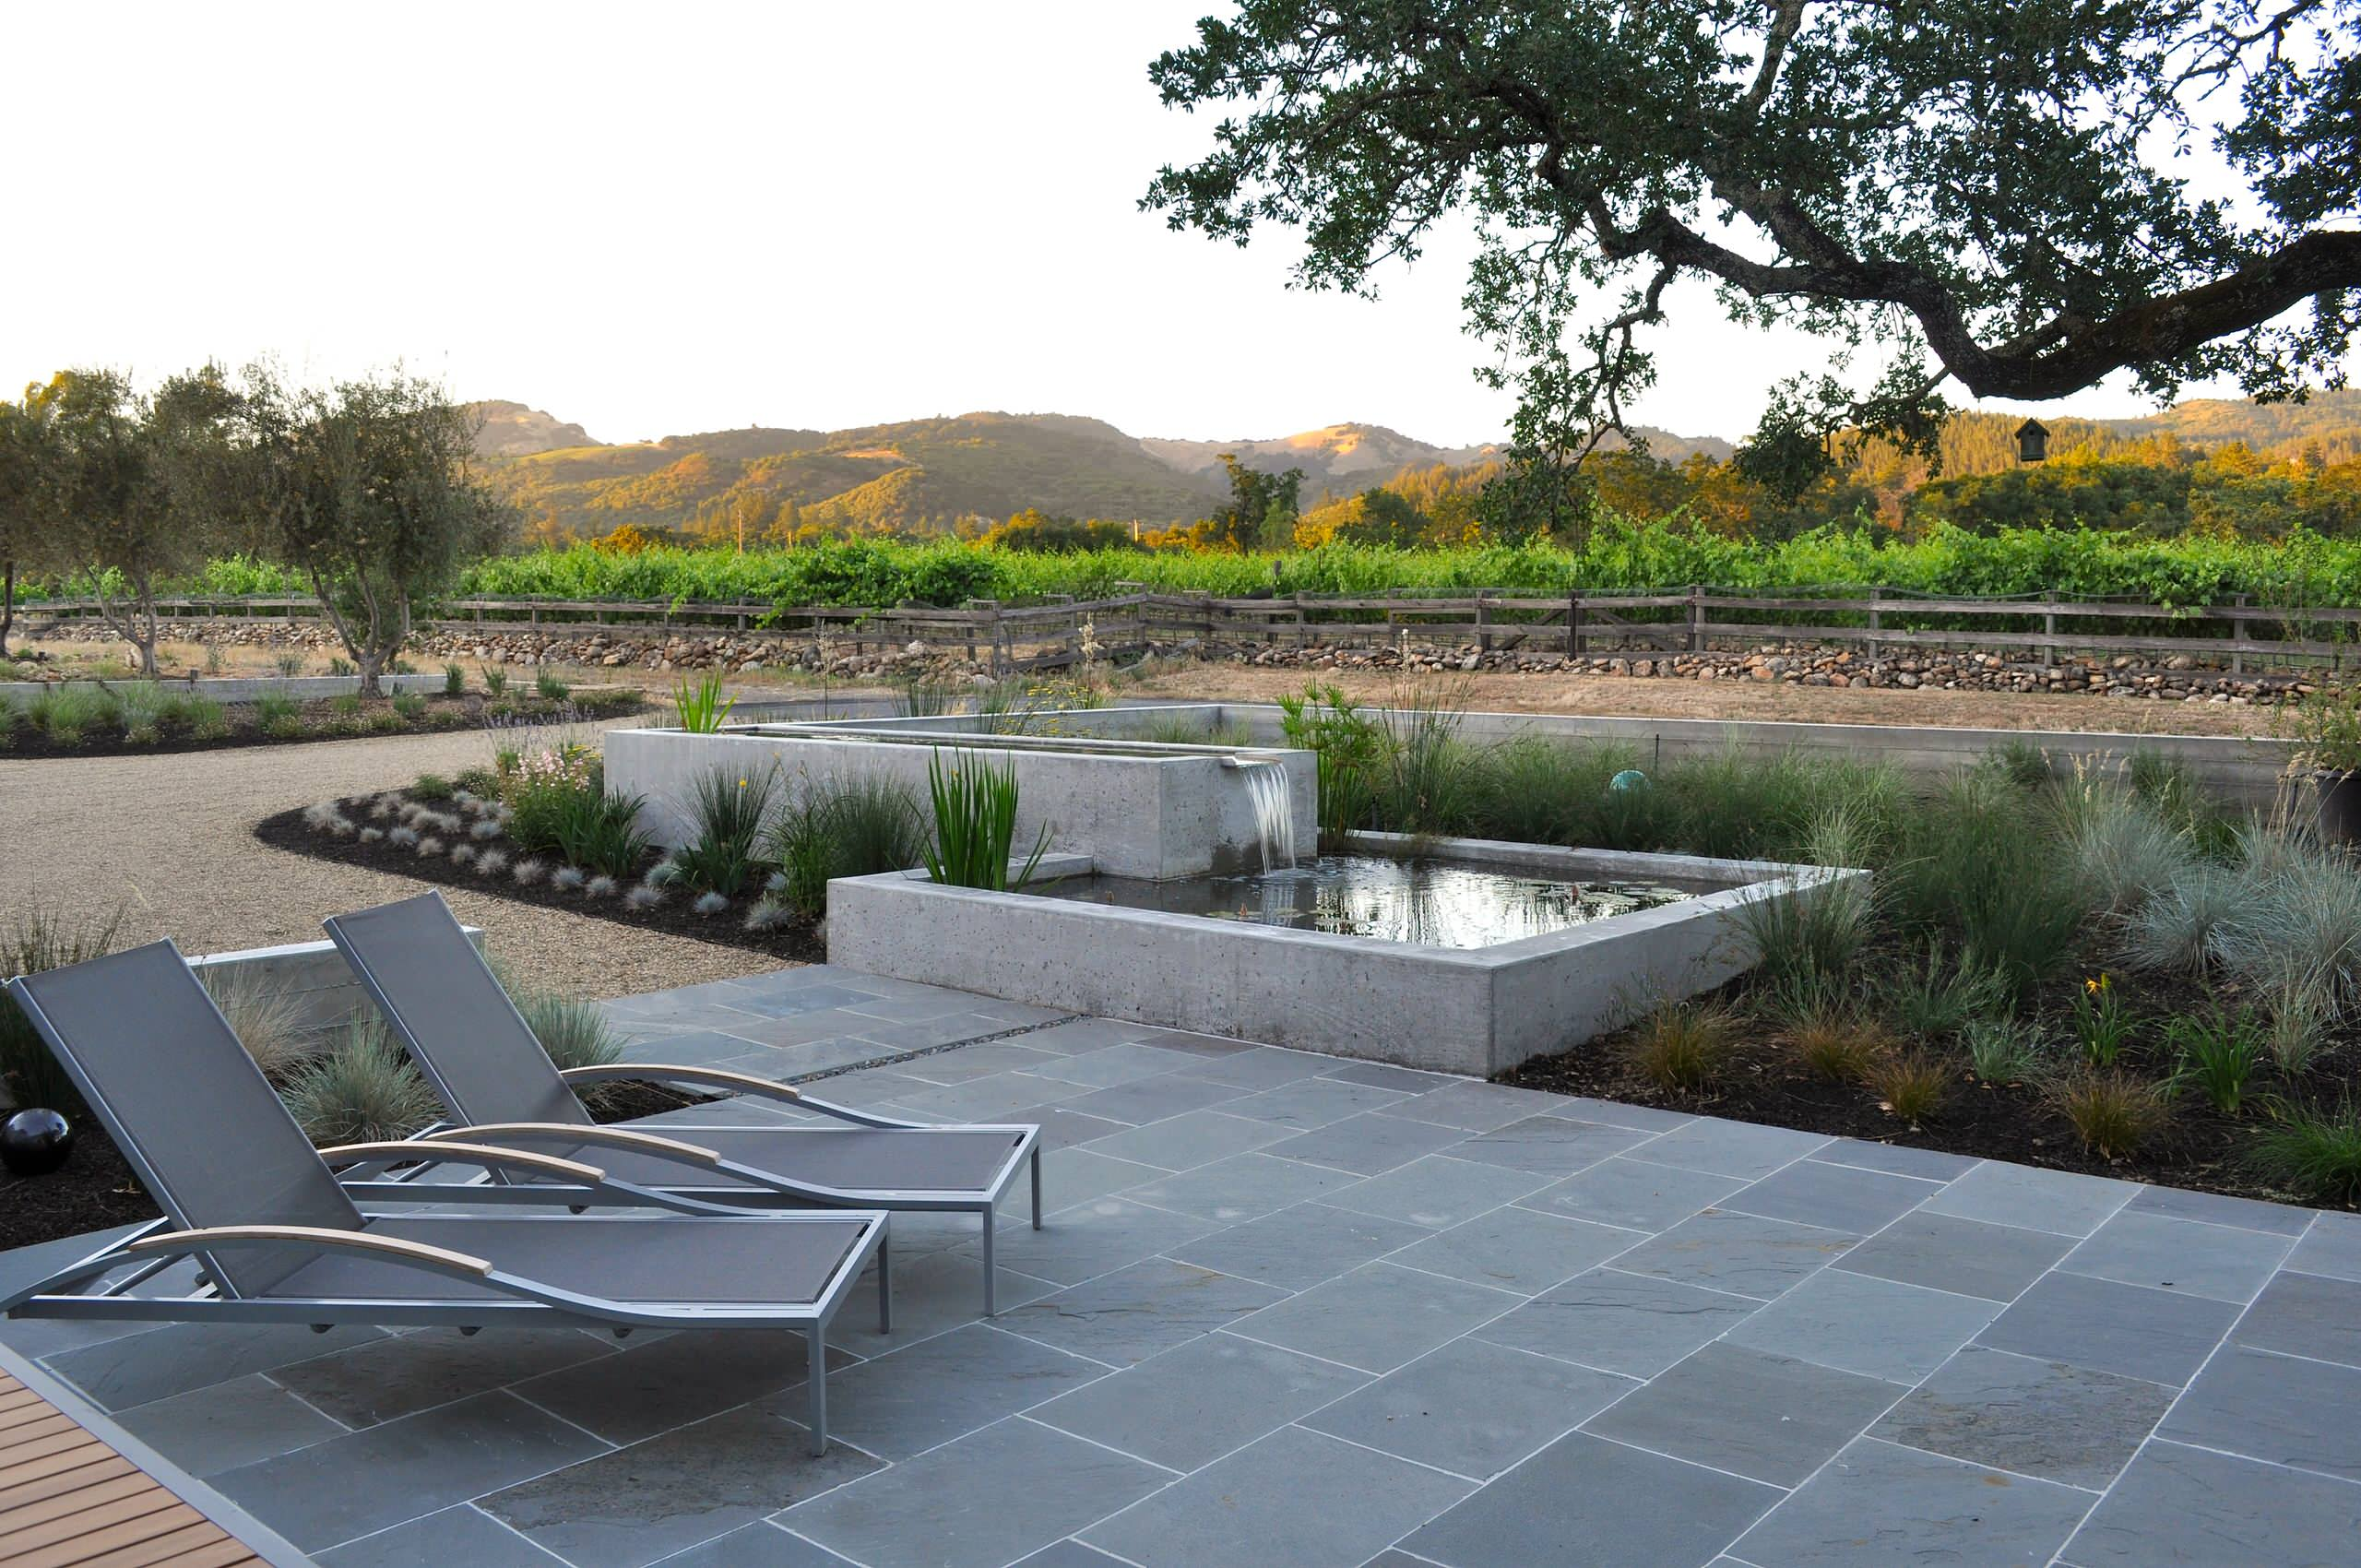 Bluestone Pavers Ideas For Patio Flooring: Chaise Lounge On Bluestone Pavers  As Exterior Seating In